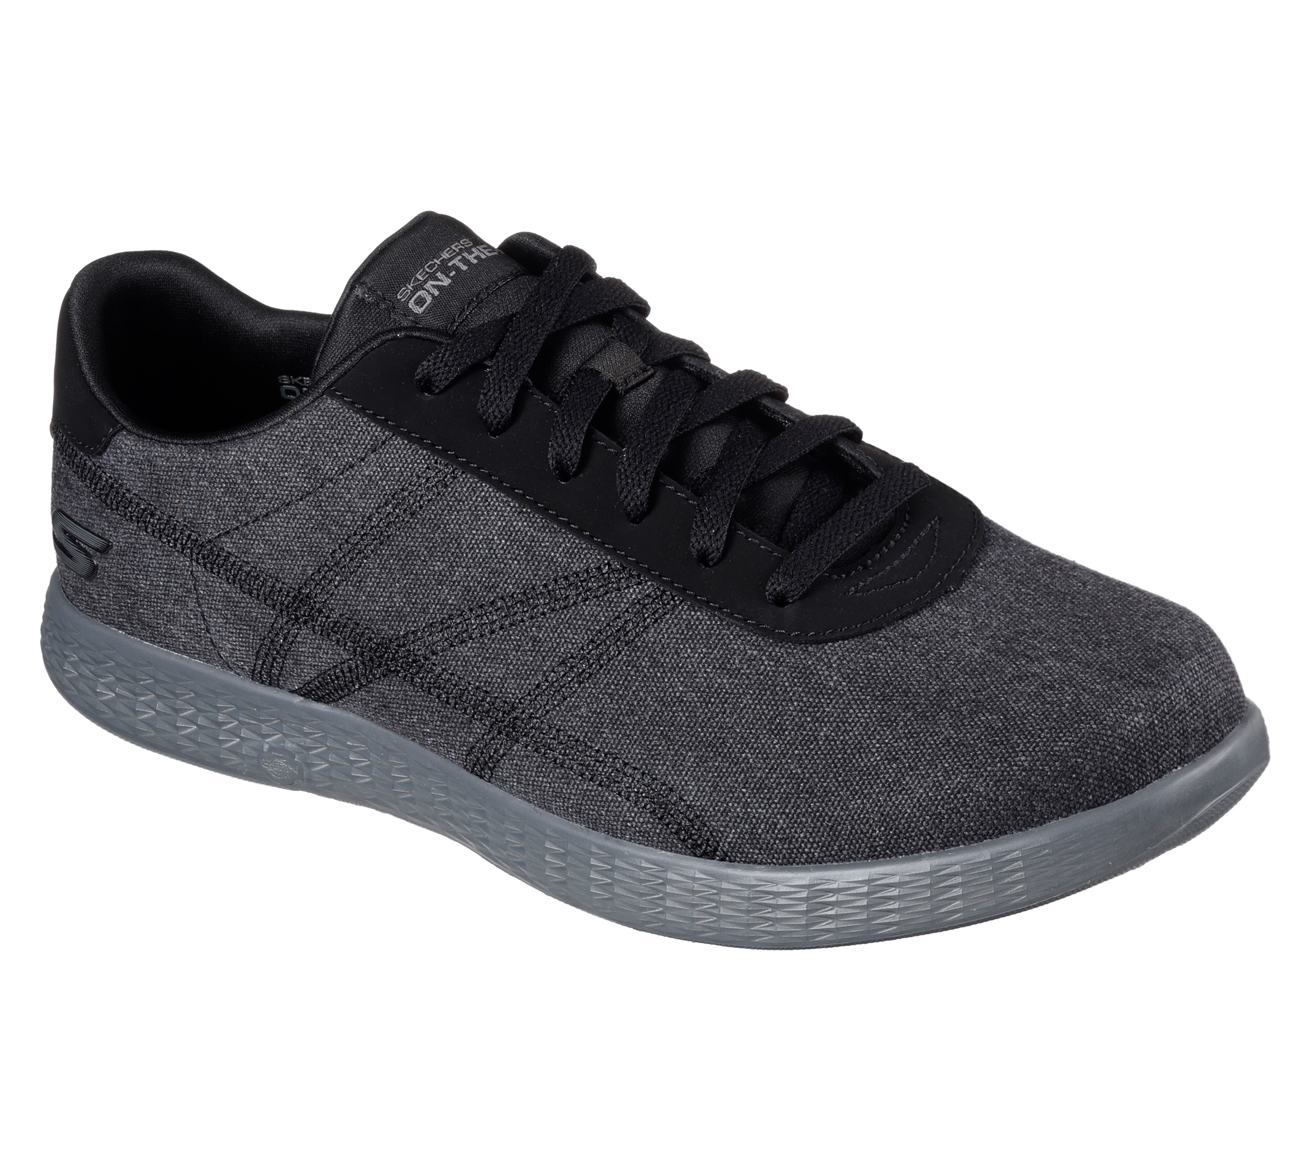 71d20a7b14516 skechers on the go cheap > OFF72% The Largest Catalog Discounts